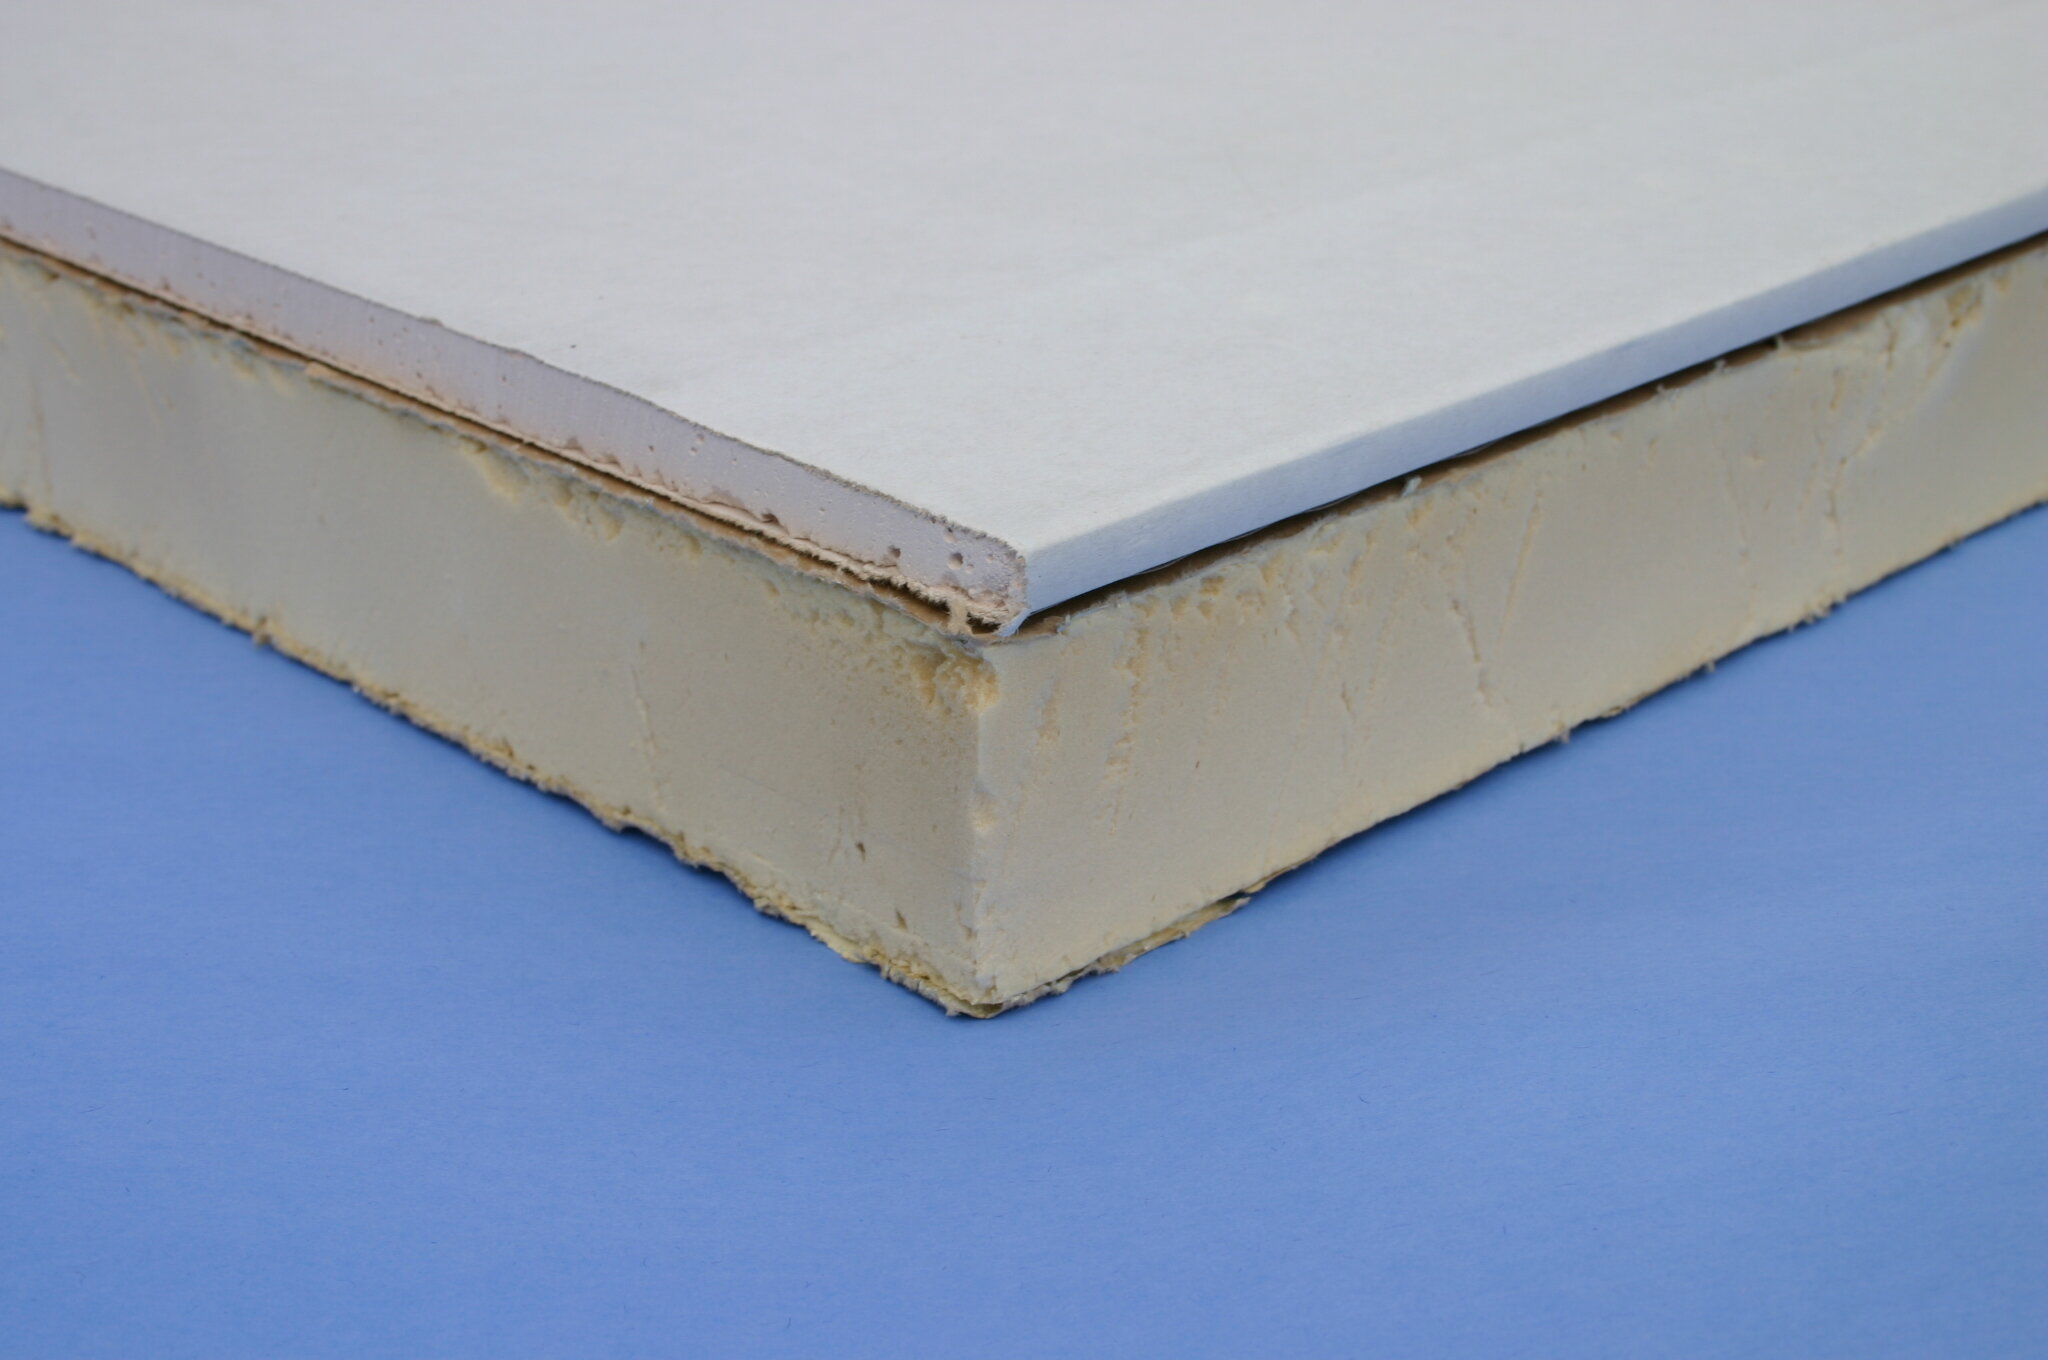 Xtratherm Insulated Plasterboard 63mm - 2438 x 1200mm